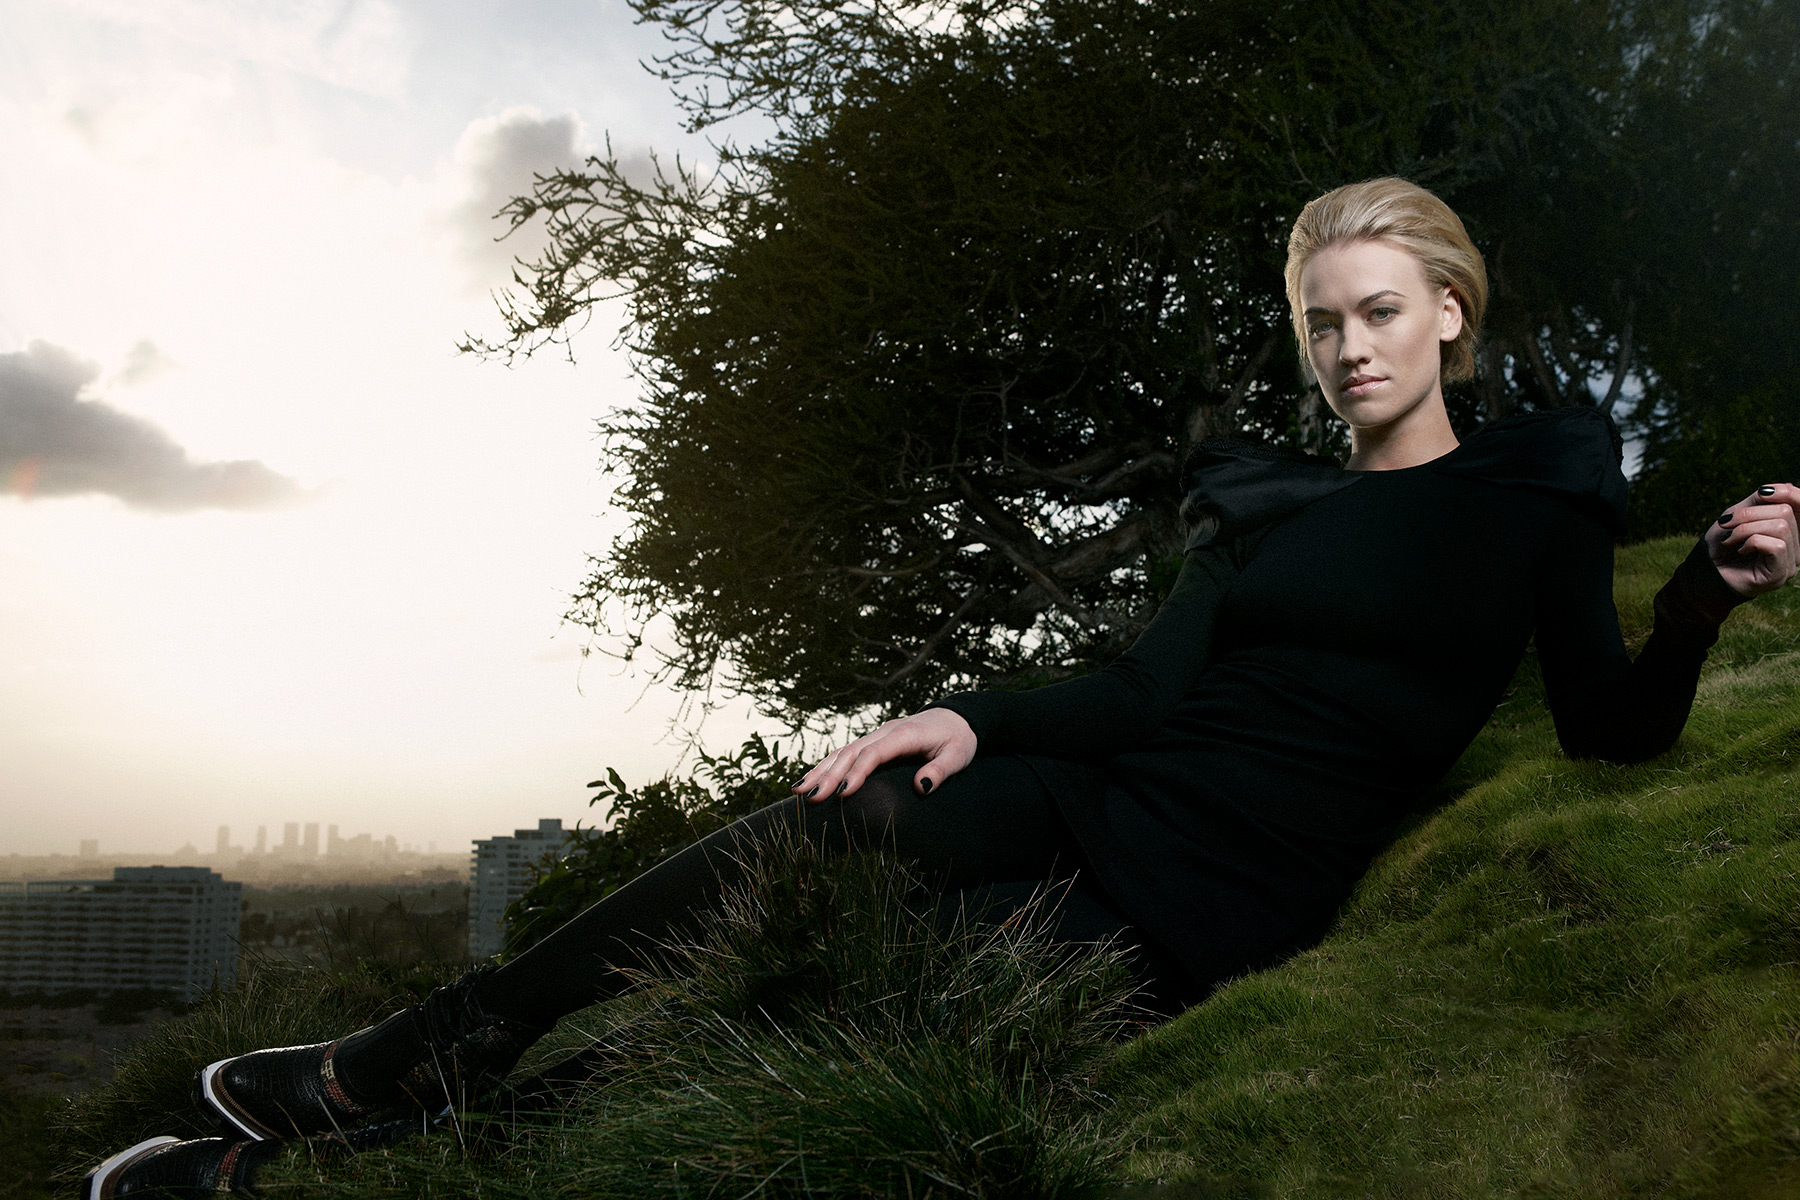 portrait of Actress Yvonne Strahovski photographed by Scott Council